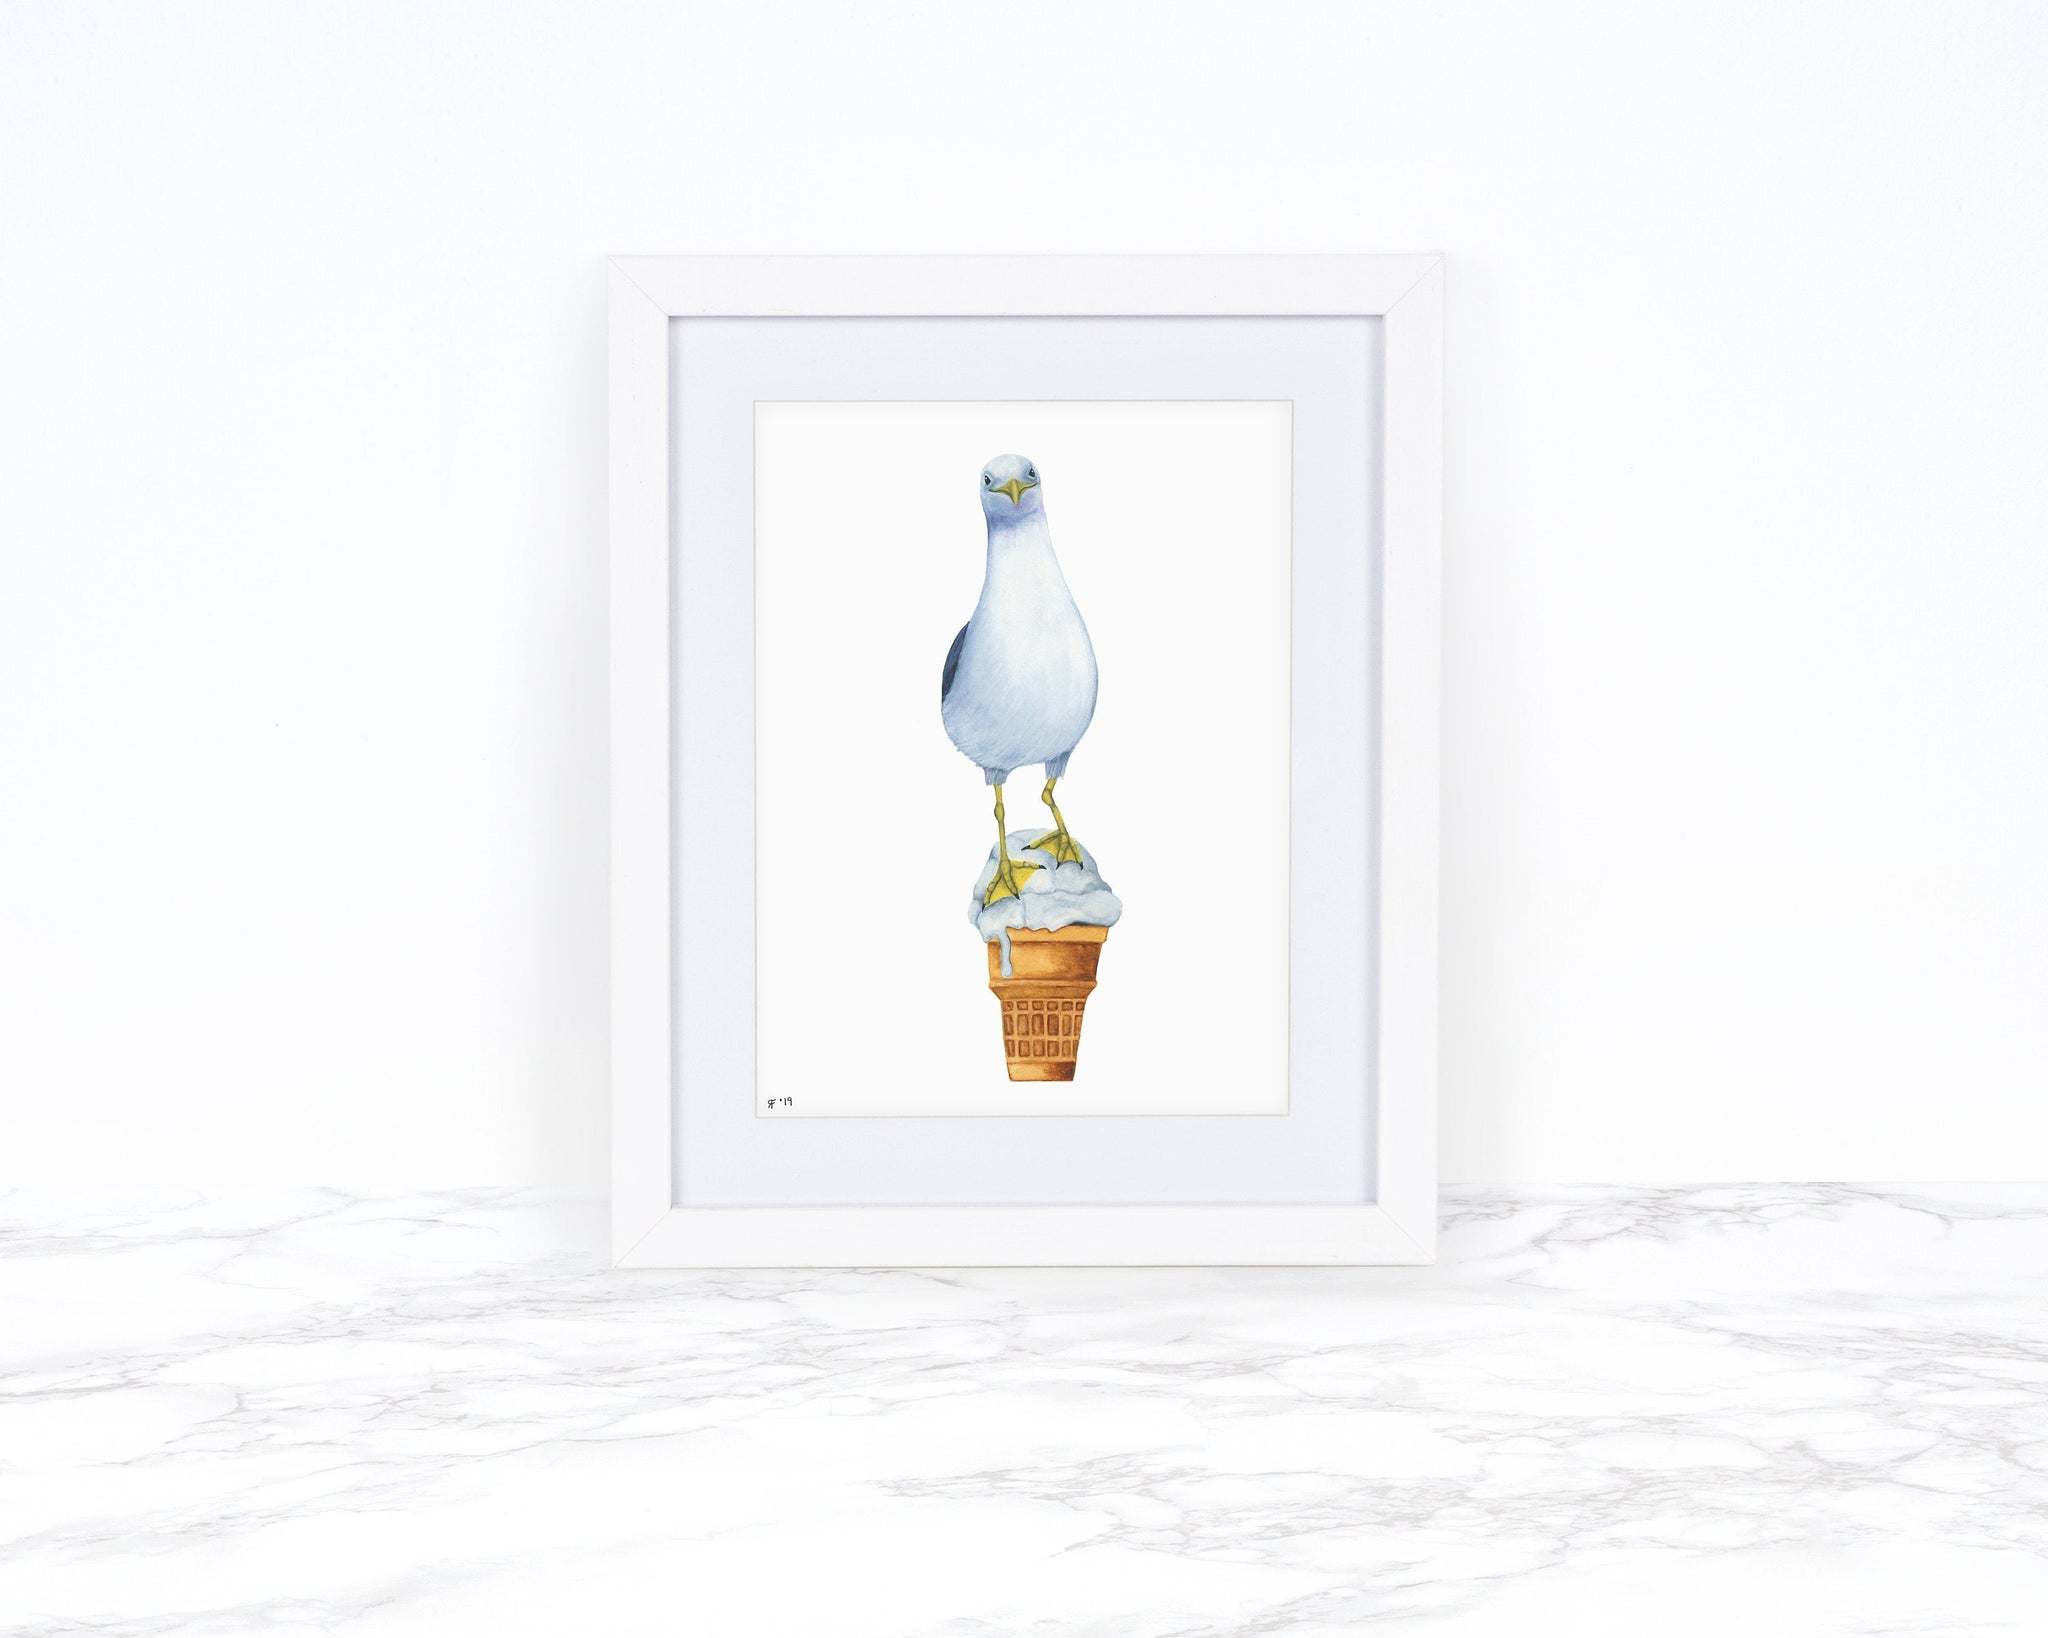 Seagull Painting, Ice Cream Painting, Original Watercolor Painting, Whimsical Art, Whimsical Animal Art, Coastal Wall Art Kitchen Wall Decor